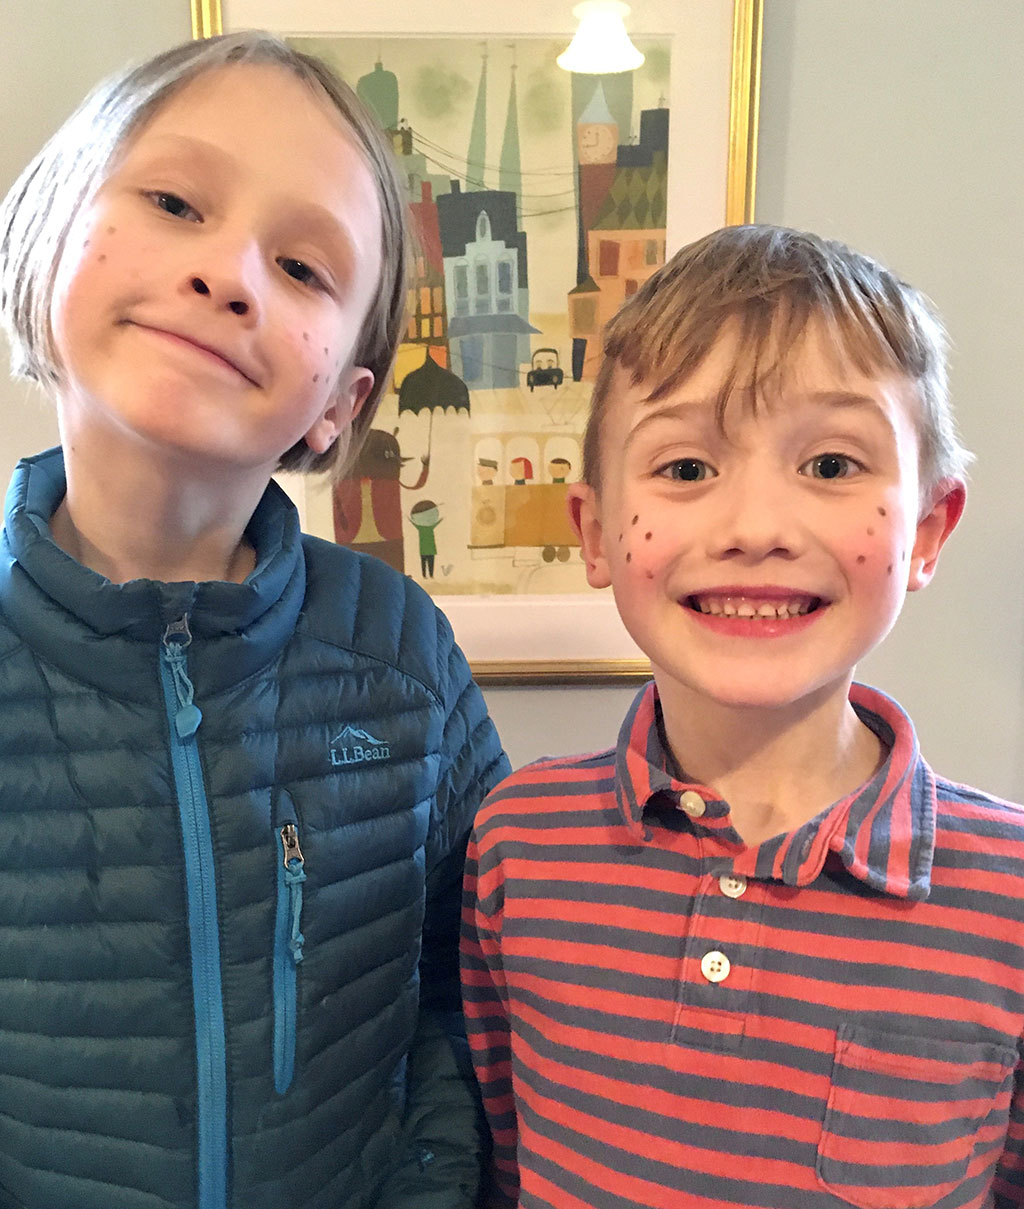 Swedish Maundy Thursday - Kids with freckles!